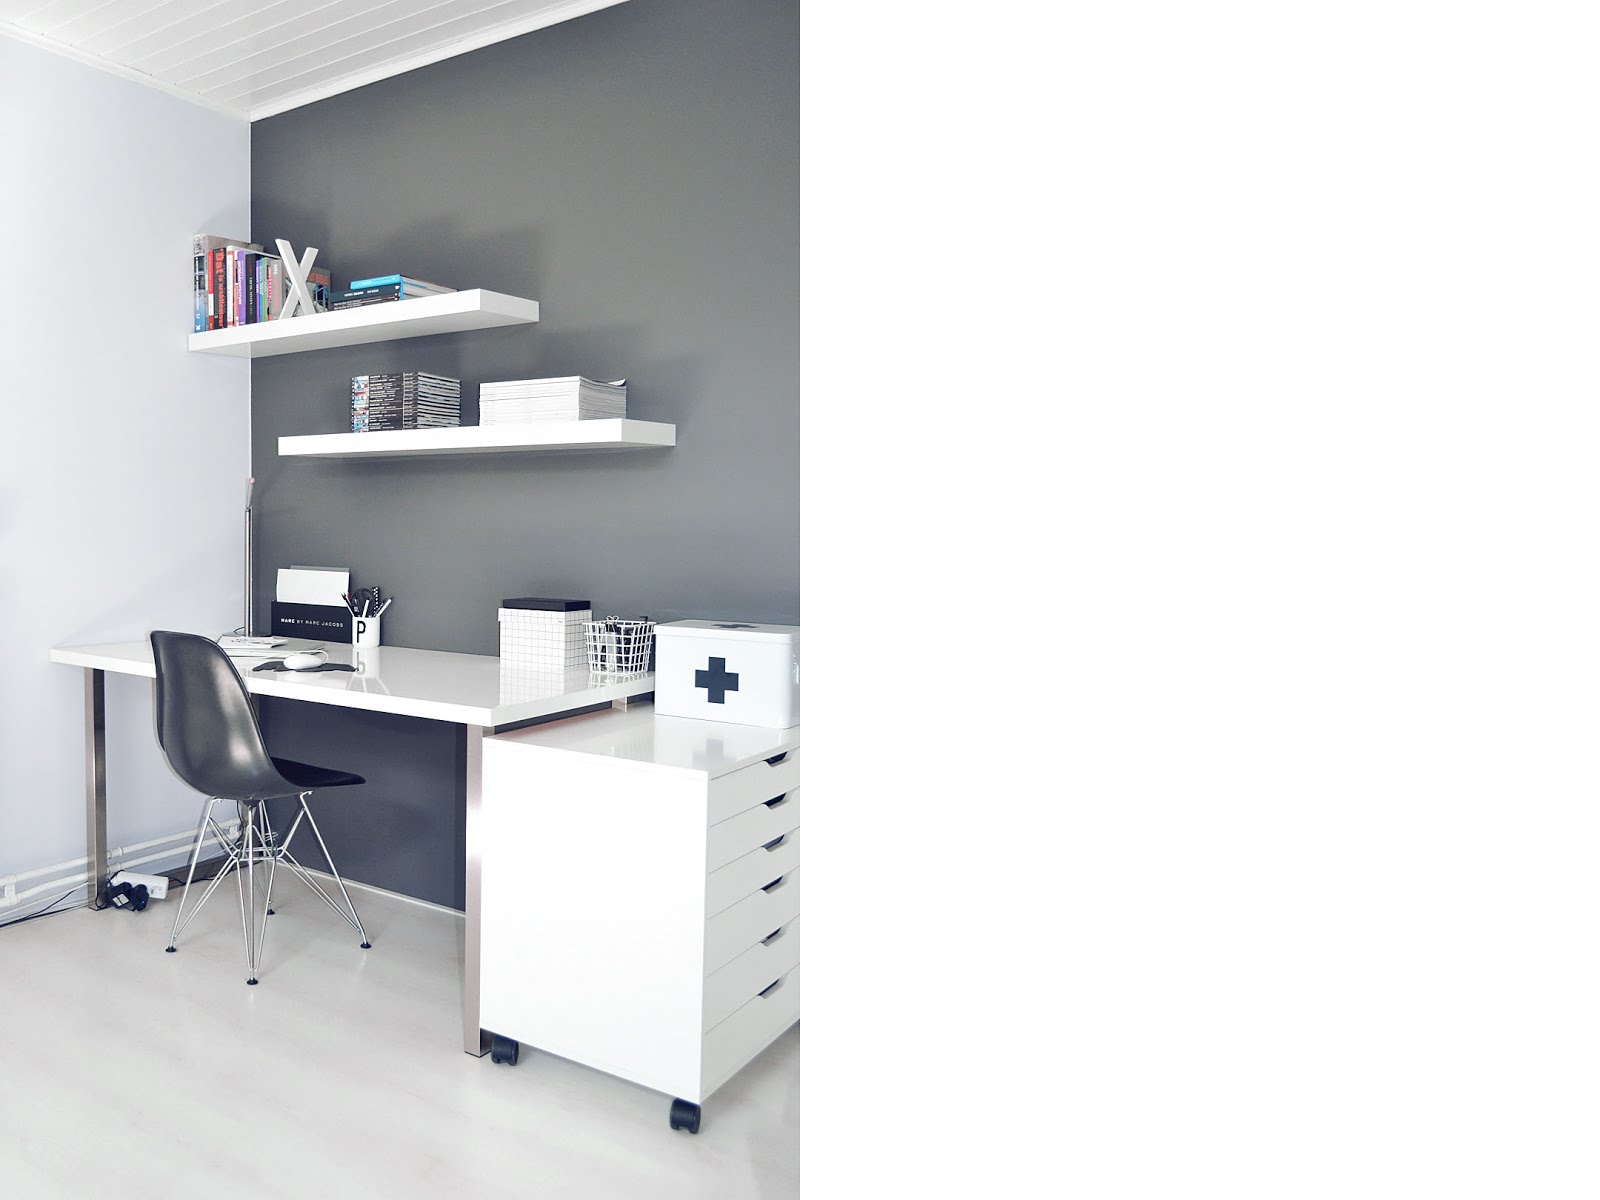 Ikea alex, minimal workspace, white grey, vitra dsx chair, marc jacobs, hay box, vogue collection, hema medicijn box, arne jacobsen letter cup